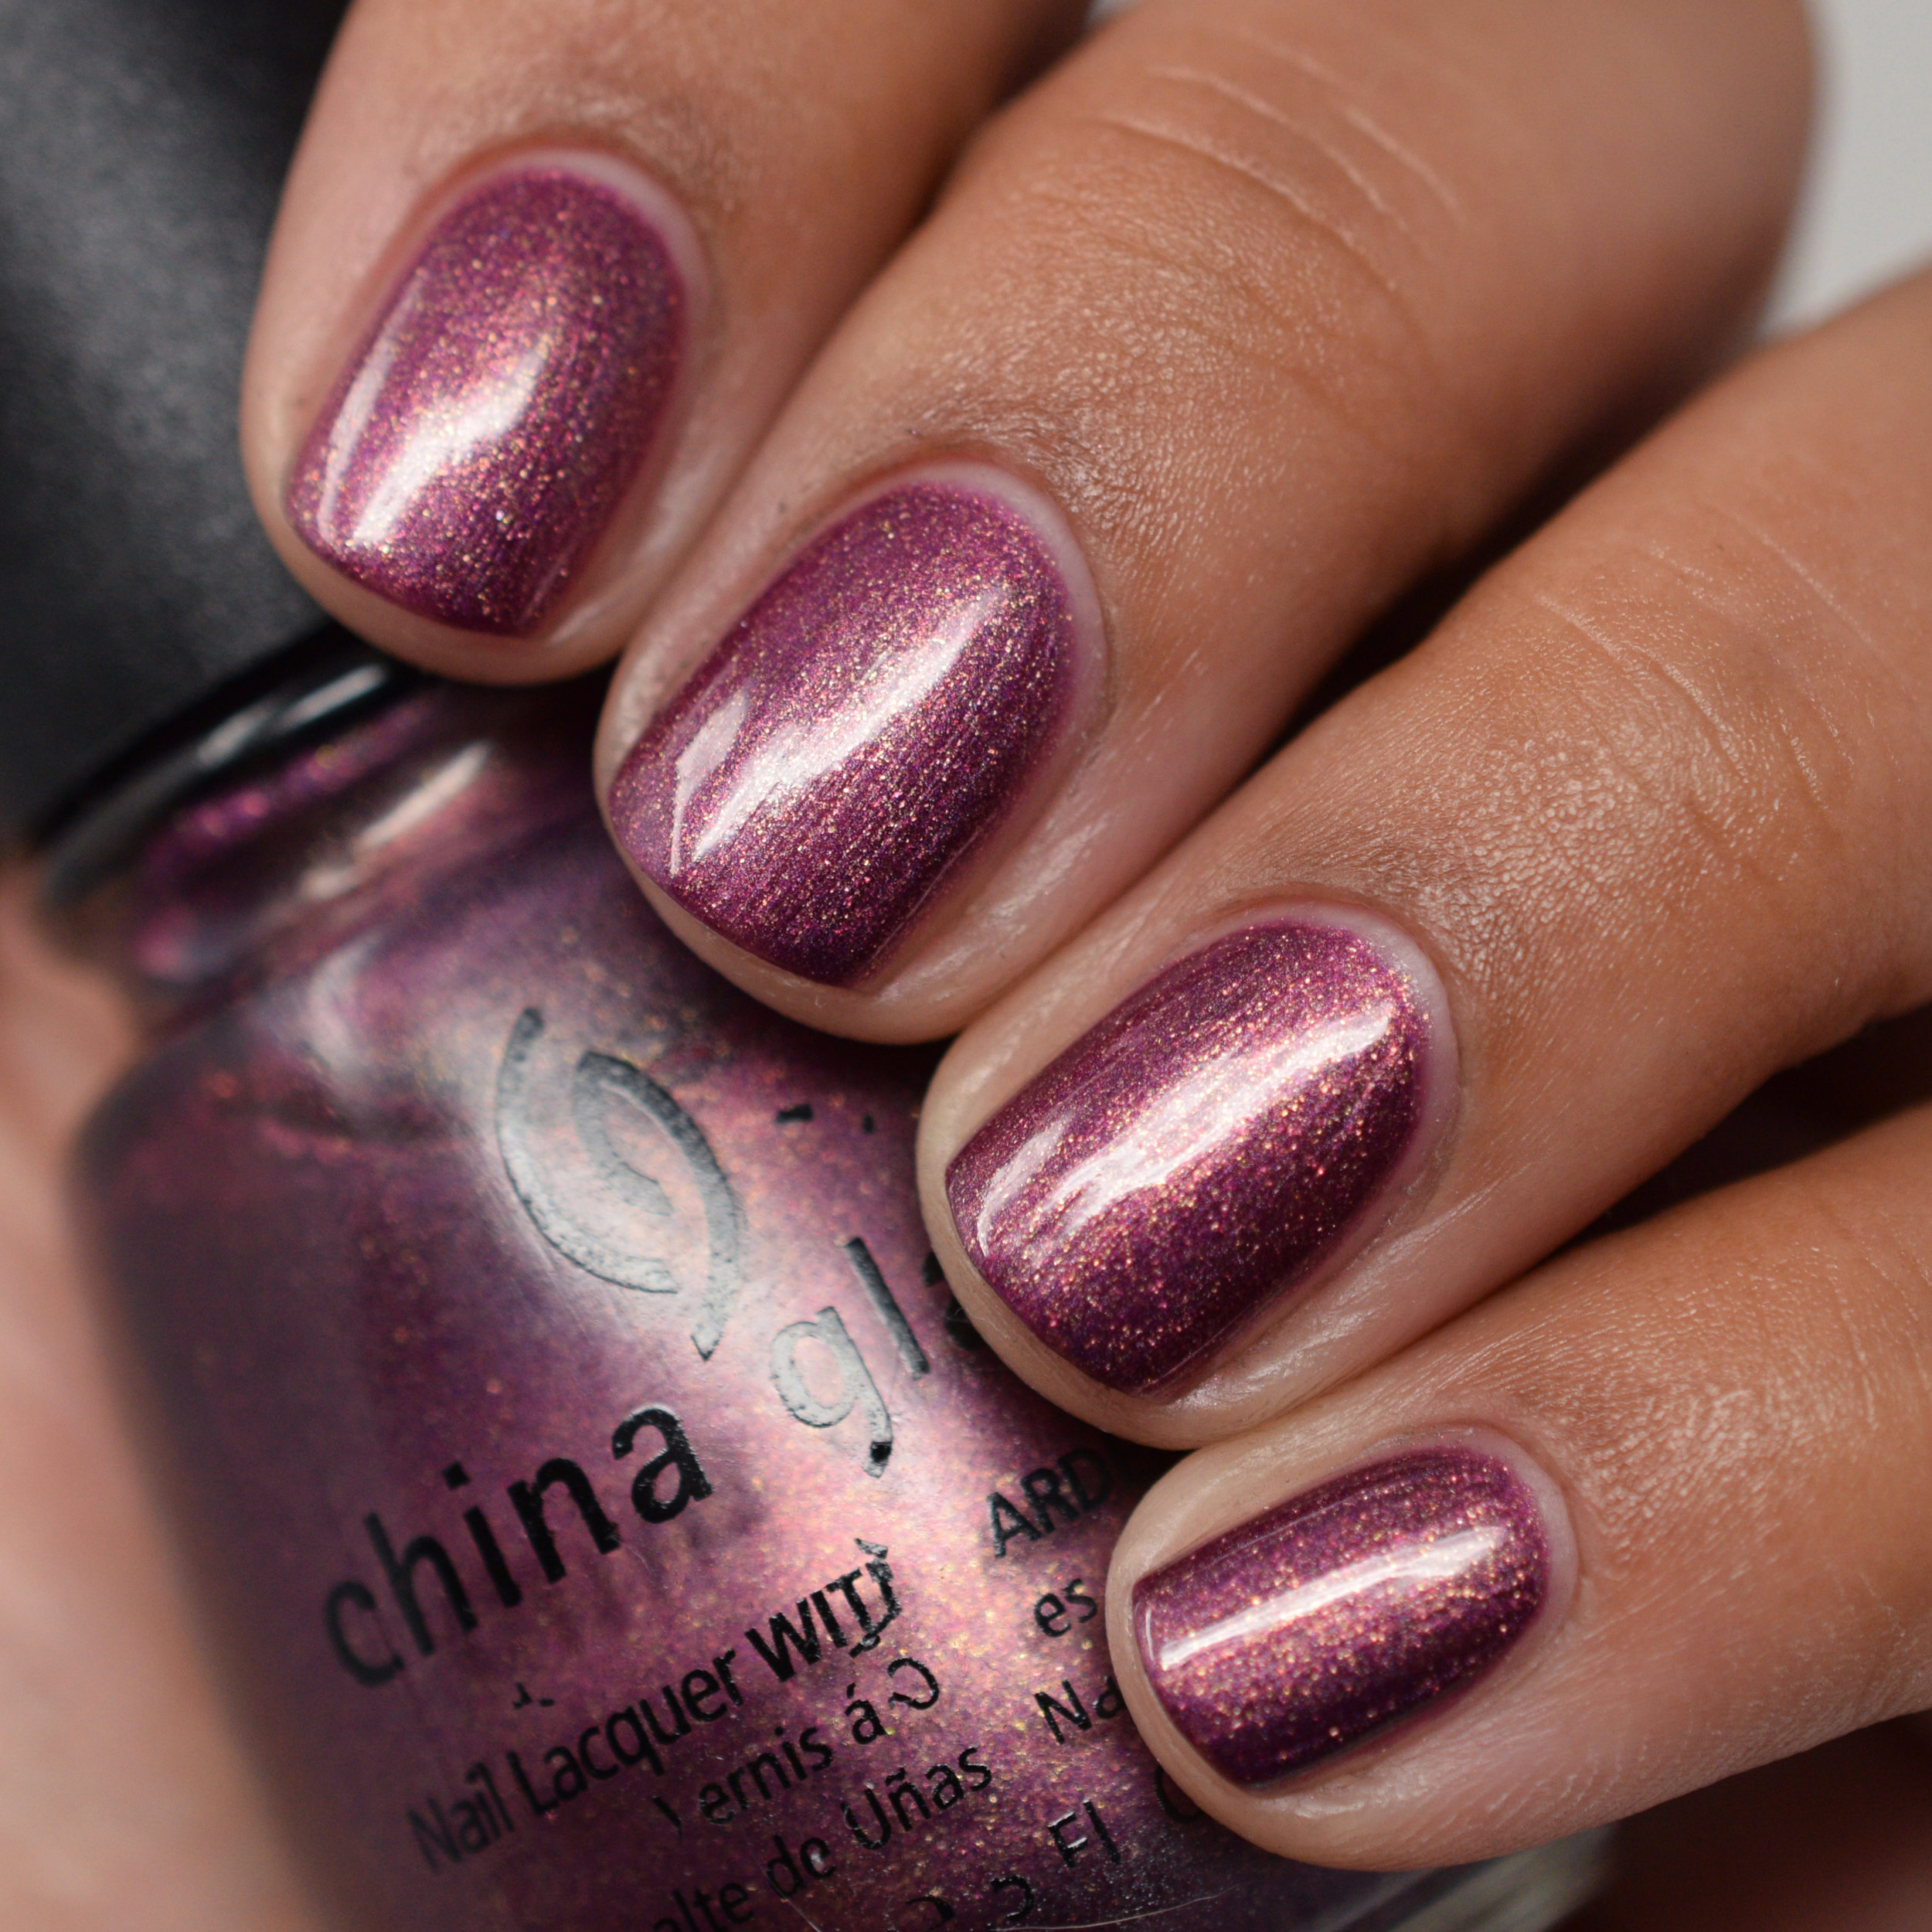 China Glaze Rodeo Diva Fall 2008 - Lasso My Heart.jpg